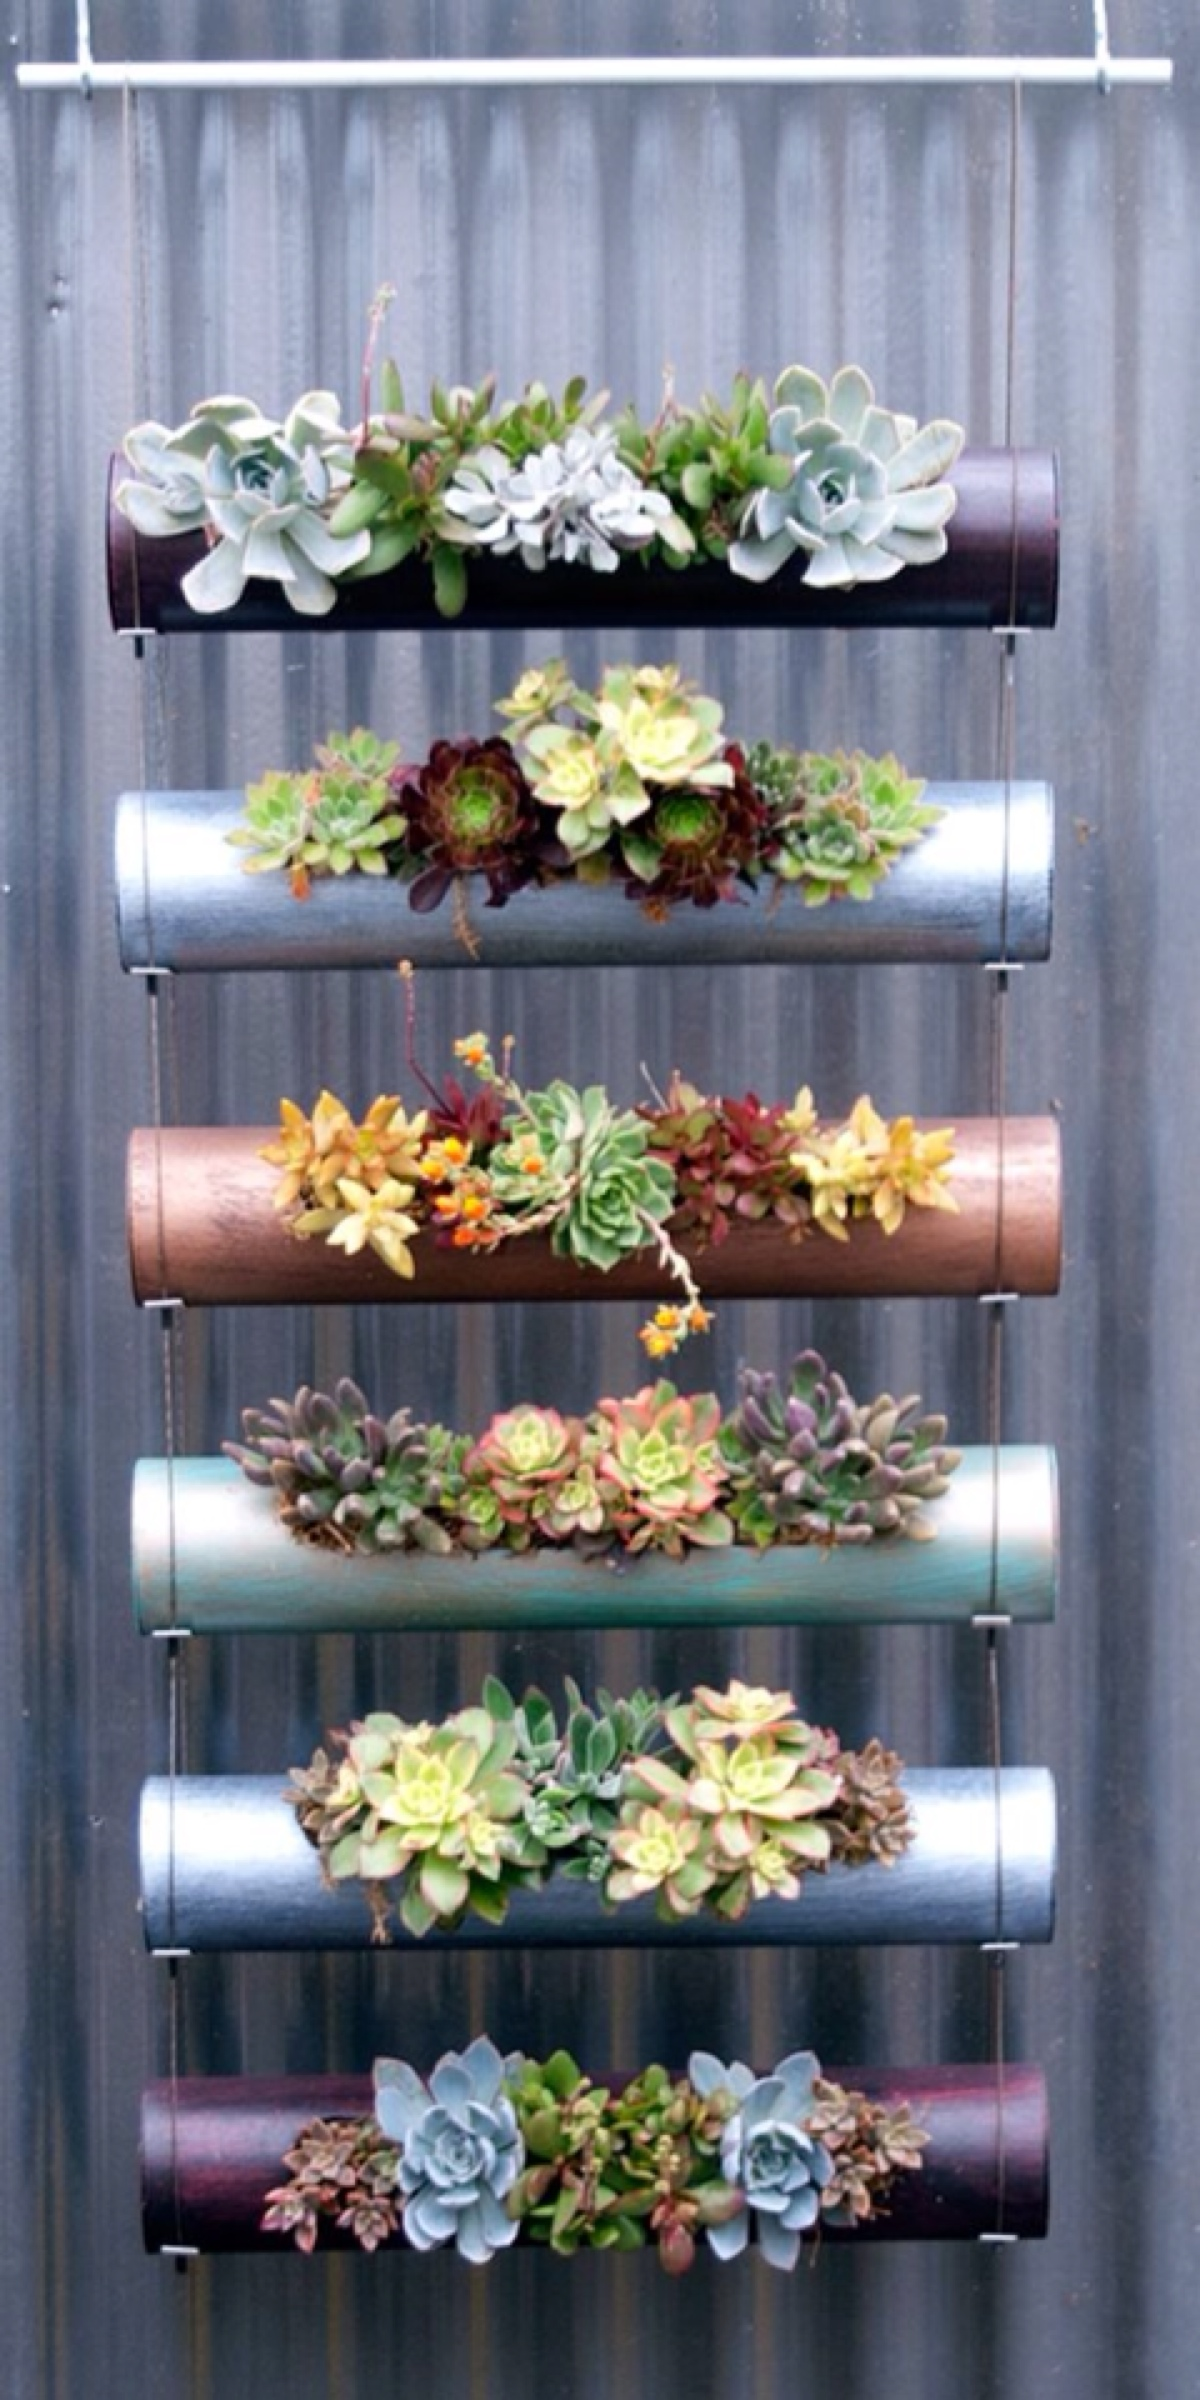 08-a-sleek-modern-vertical-garden-homebnc